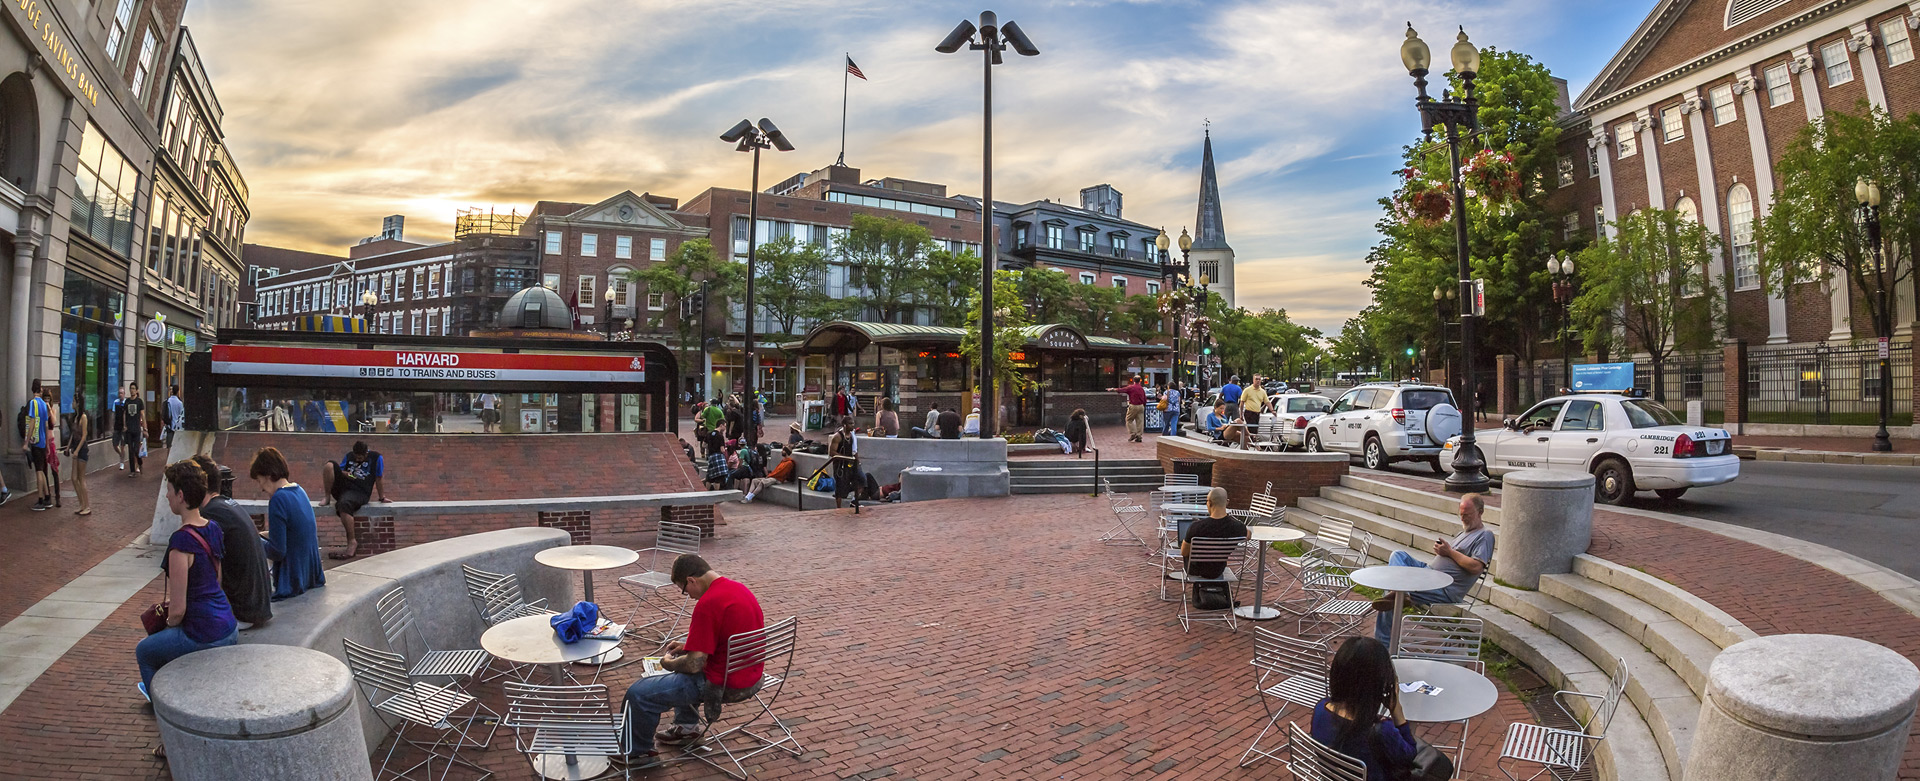 ... Our Favorites · Rental Information · Contact. Cambridge Area. Harvard  Square